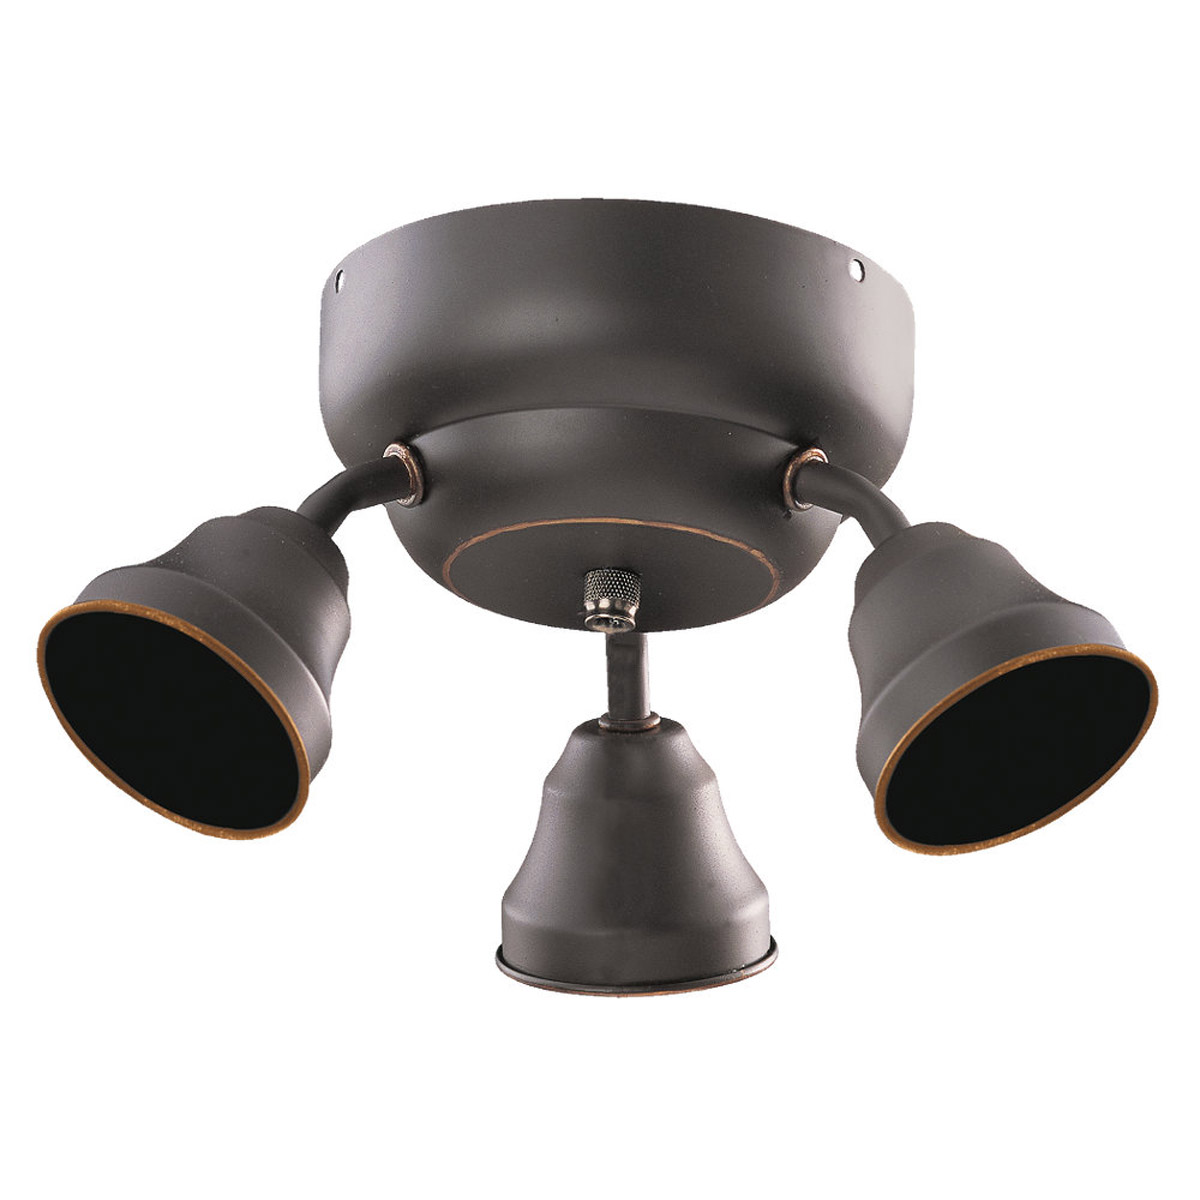 Sea Gull Lighting Signature 3 Light Fan Light Kit Fluorescent in Heirloom Bronze 16024BLE-782